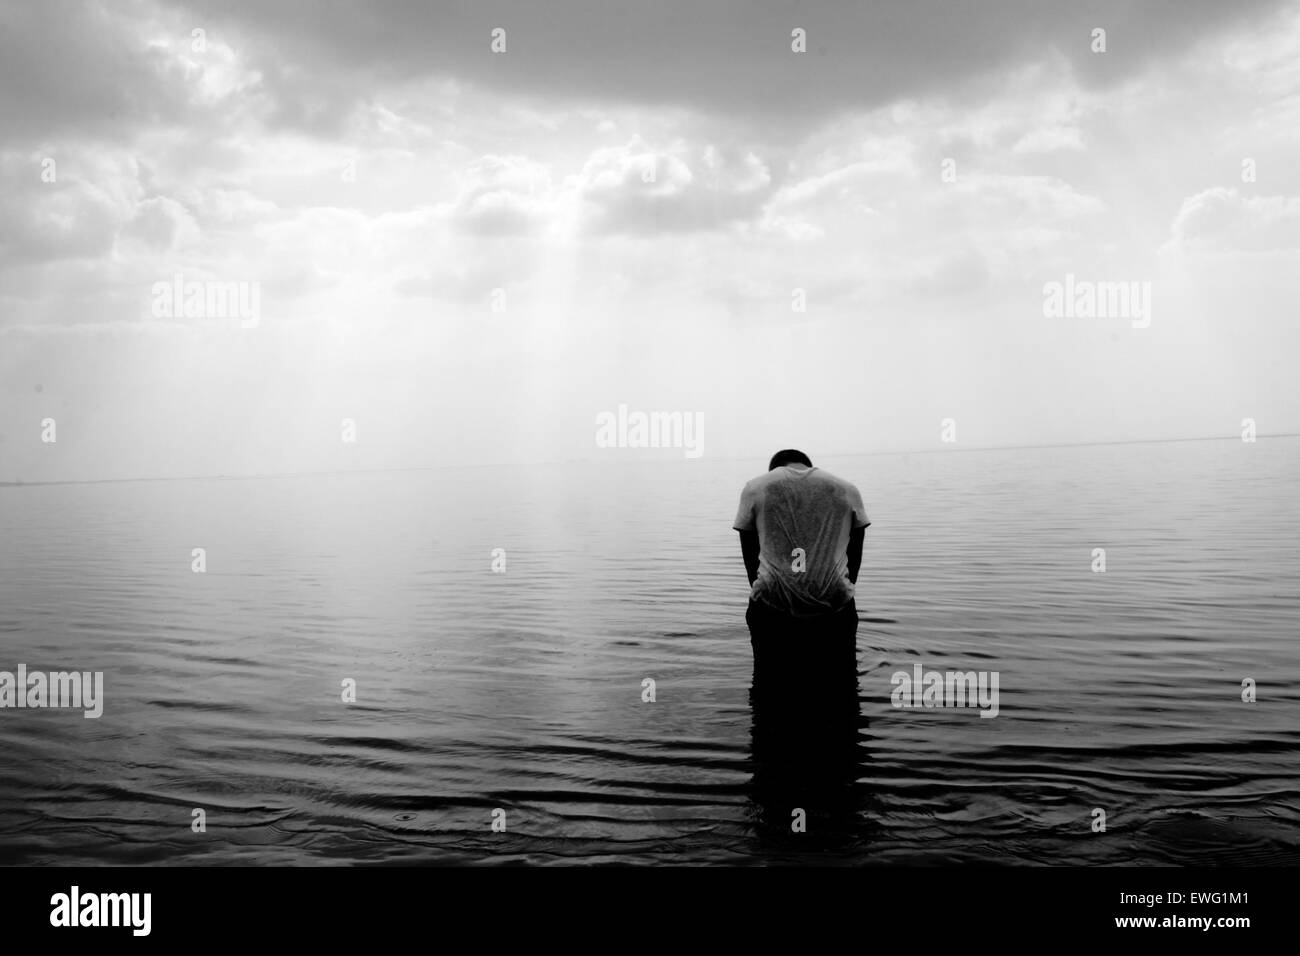 Heads Bowed In Silent Prayer To Fish >> Bowing Your Head Stock Photos Bowing Your Head Stock Images Alamy